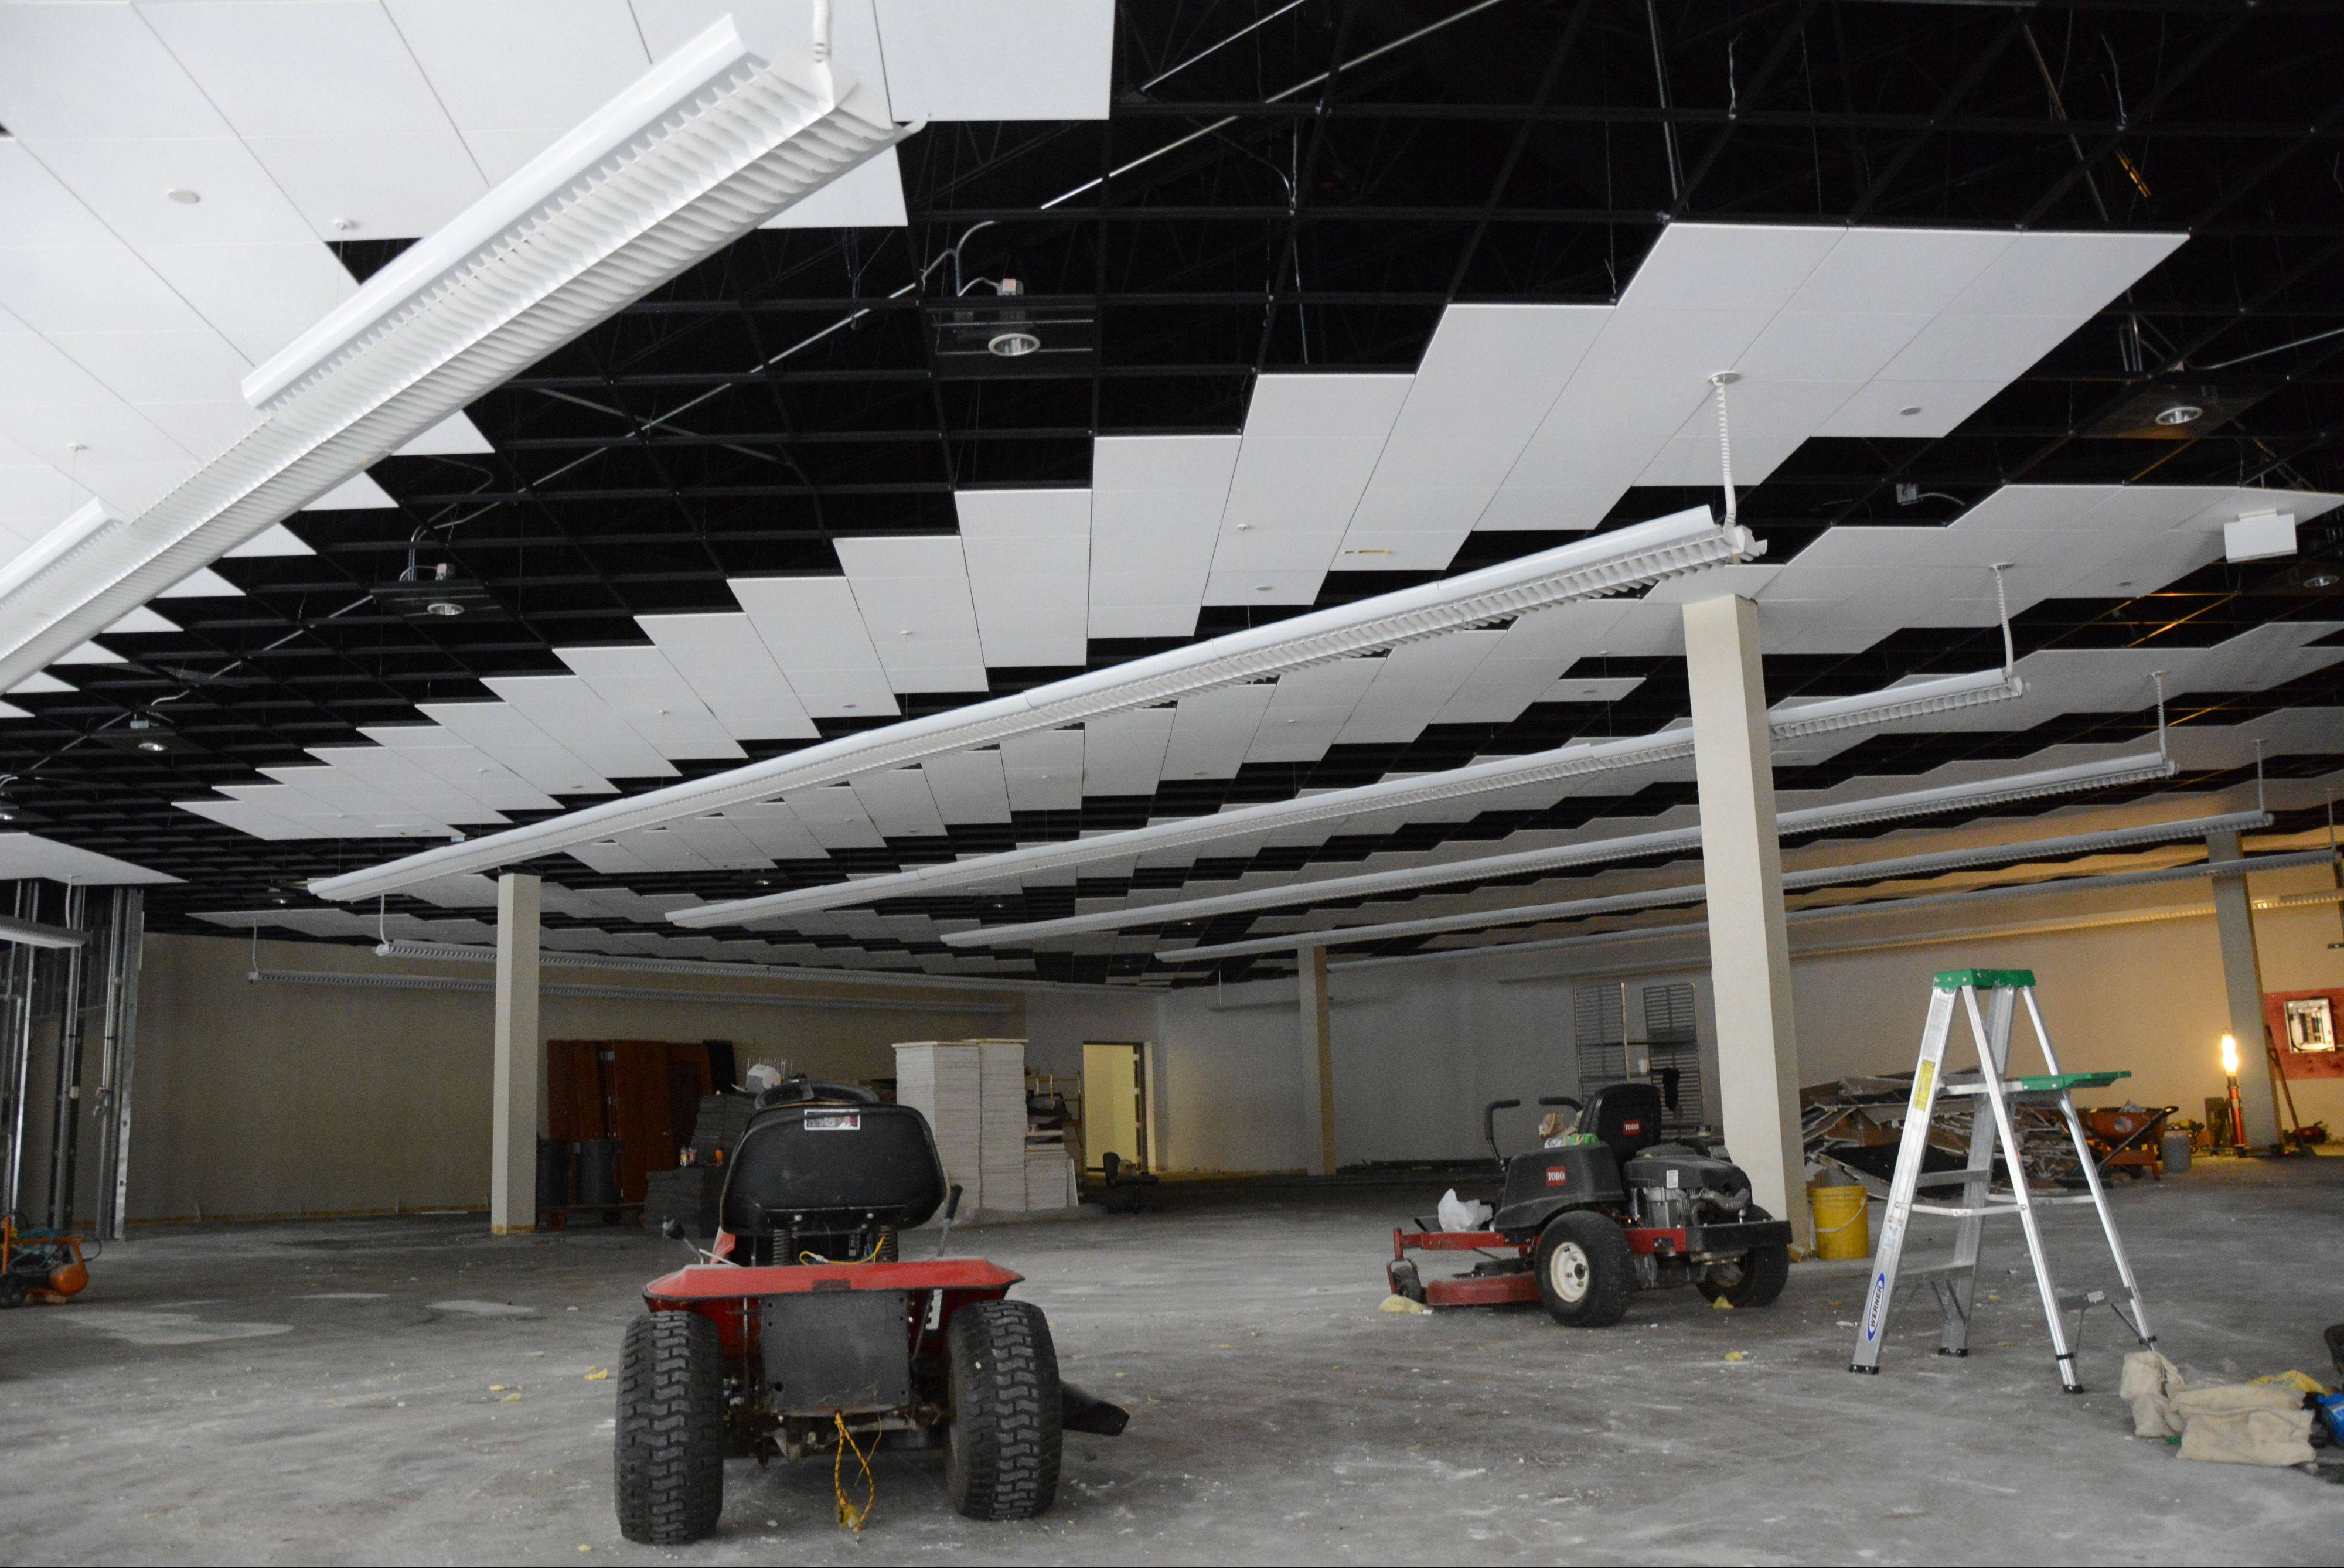 This is the interior of the new GiGi's Playhouse National Achievement Center under construction at 2350 Higgins Road in Hoffman Estates.